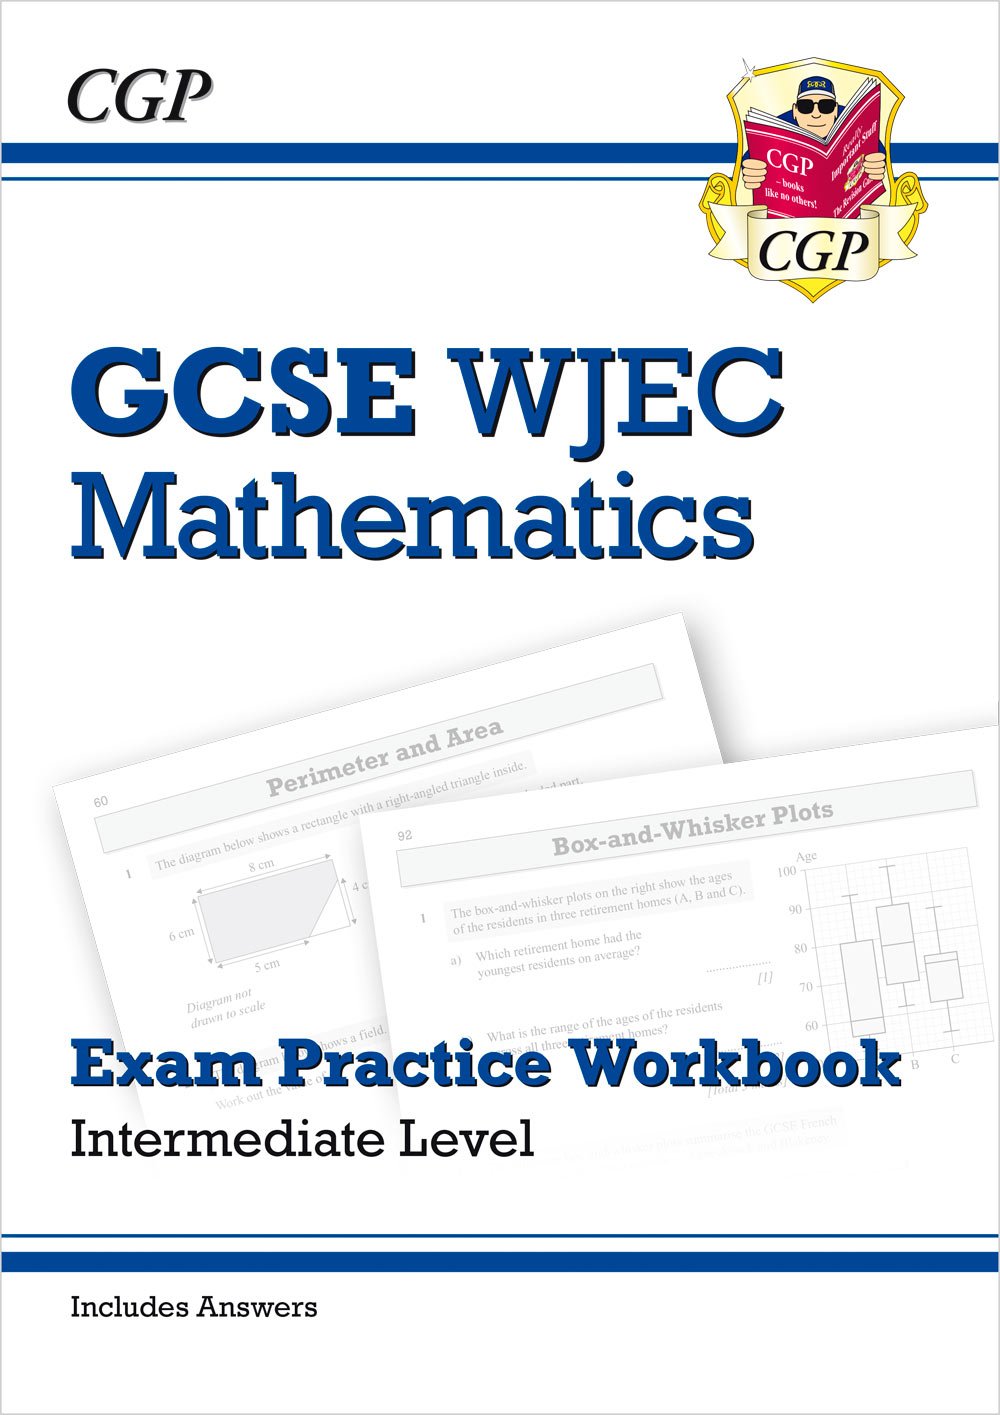 MWIQ41 - WJEC GCSE Maths Exam Practice Workbook: Intermediate (includes Answers)